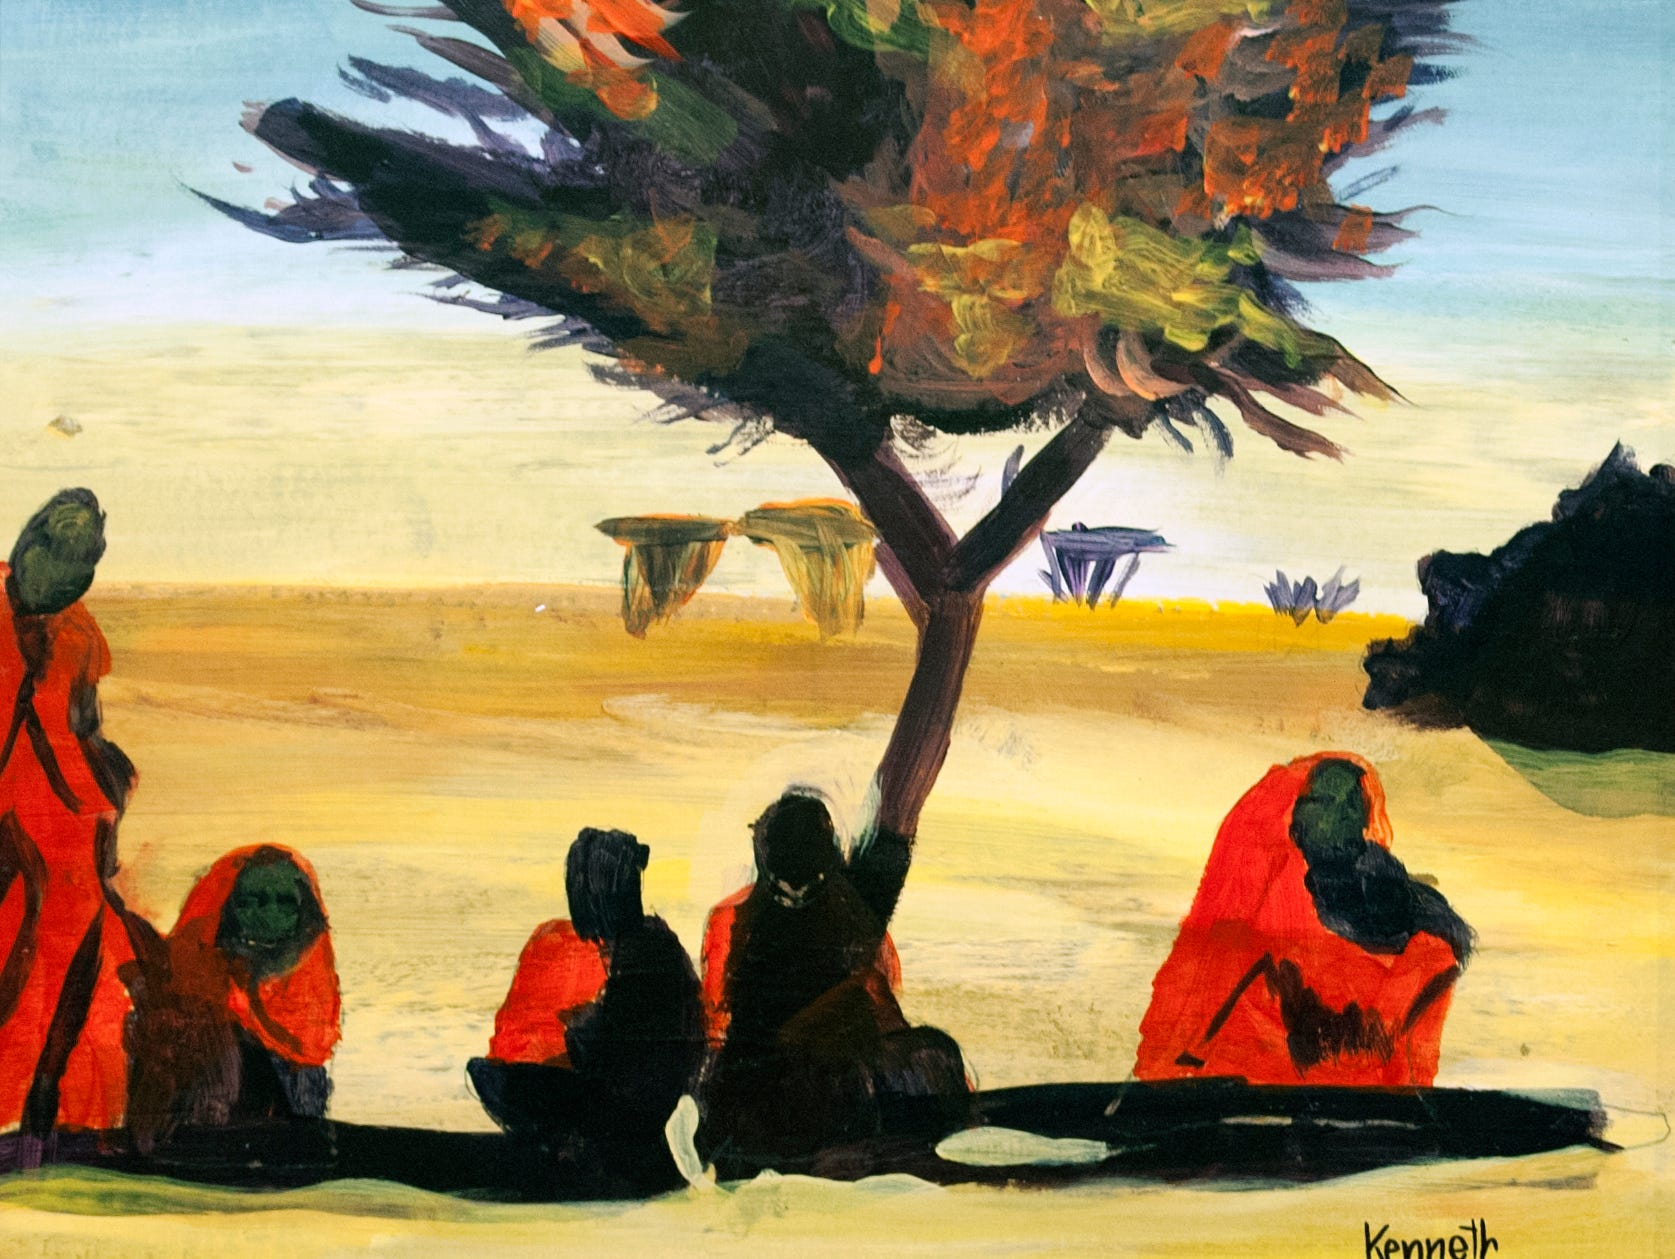 Bedouin Beauty by Kenneth Gytton is part of the VSA Community-sponsored Art Group exhibit showing at the Arts Center of Mississippi in downtown Jackson through Jan. 10, 2019. Tuesday, Dec. 18, 2018.